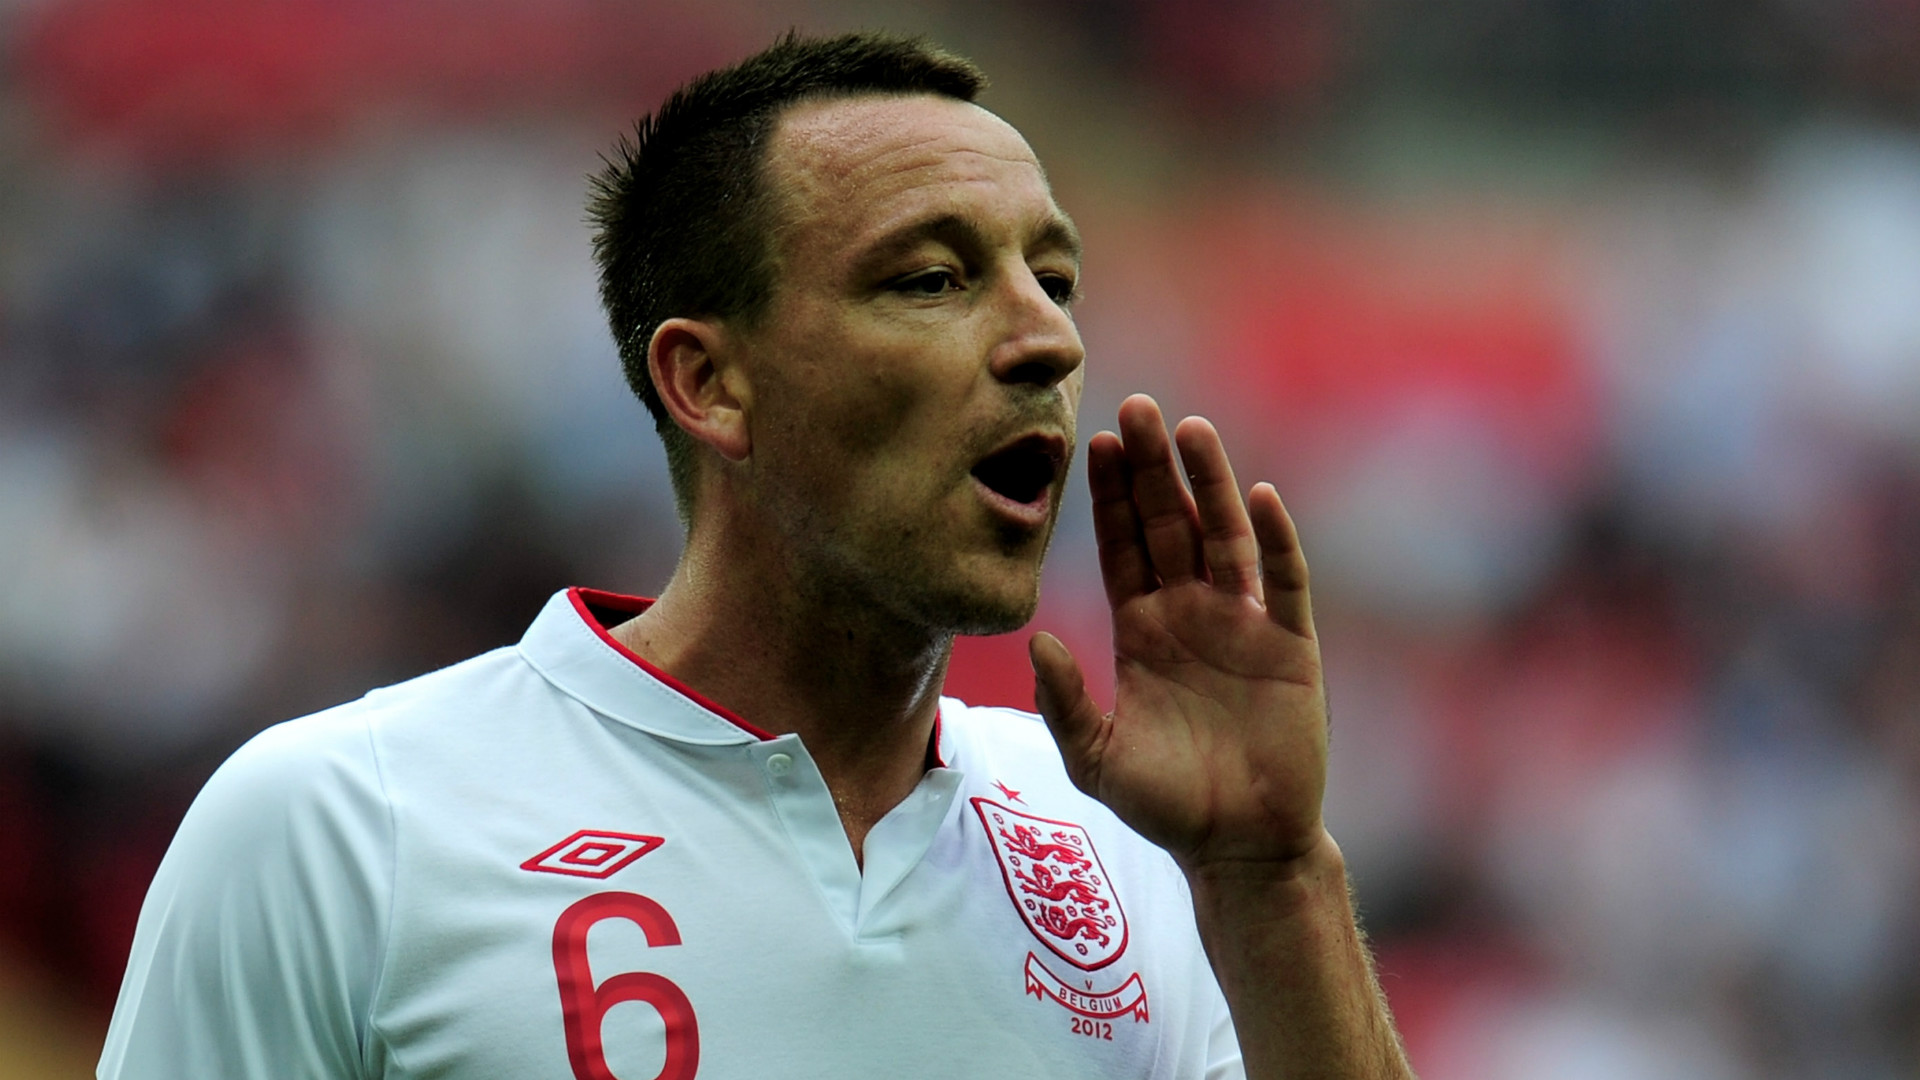 John Terry The success controversy & full kit celebrations of